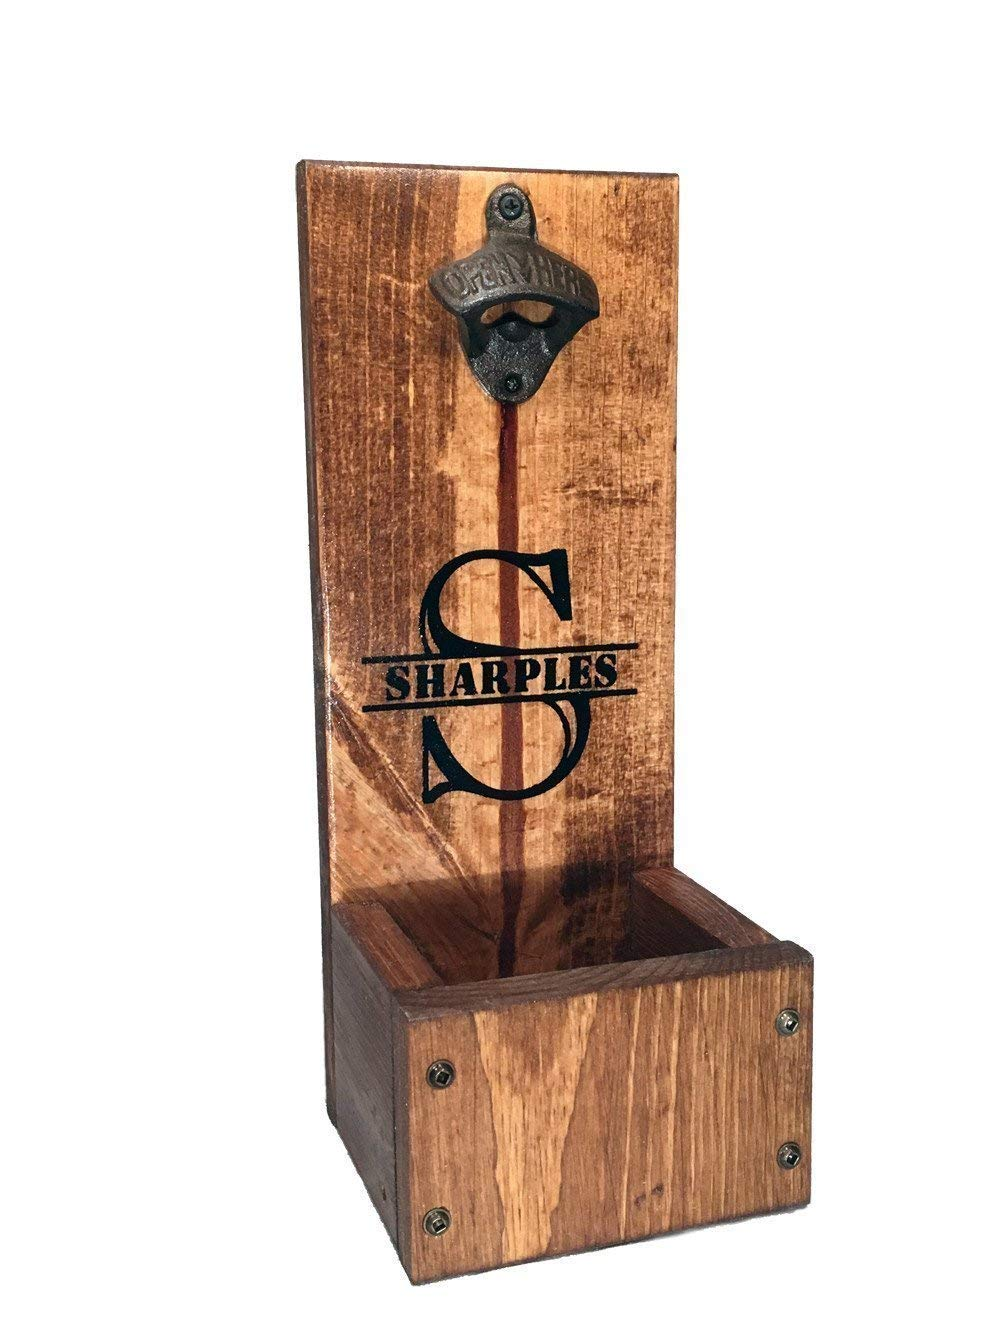 Bottle Opener with Cap Catcher - Wall Mount or Freestanding - Personalized Rustic Wood Gift - Groomsmen, Wedding and Anniversary gift sets